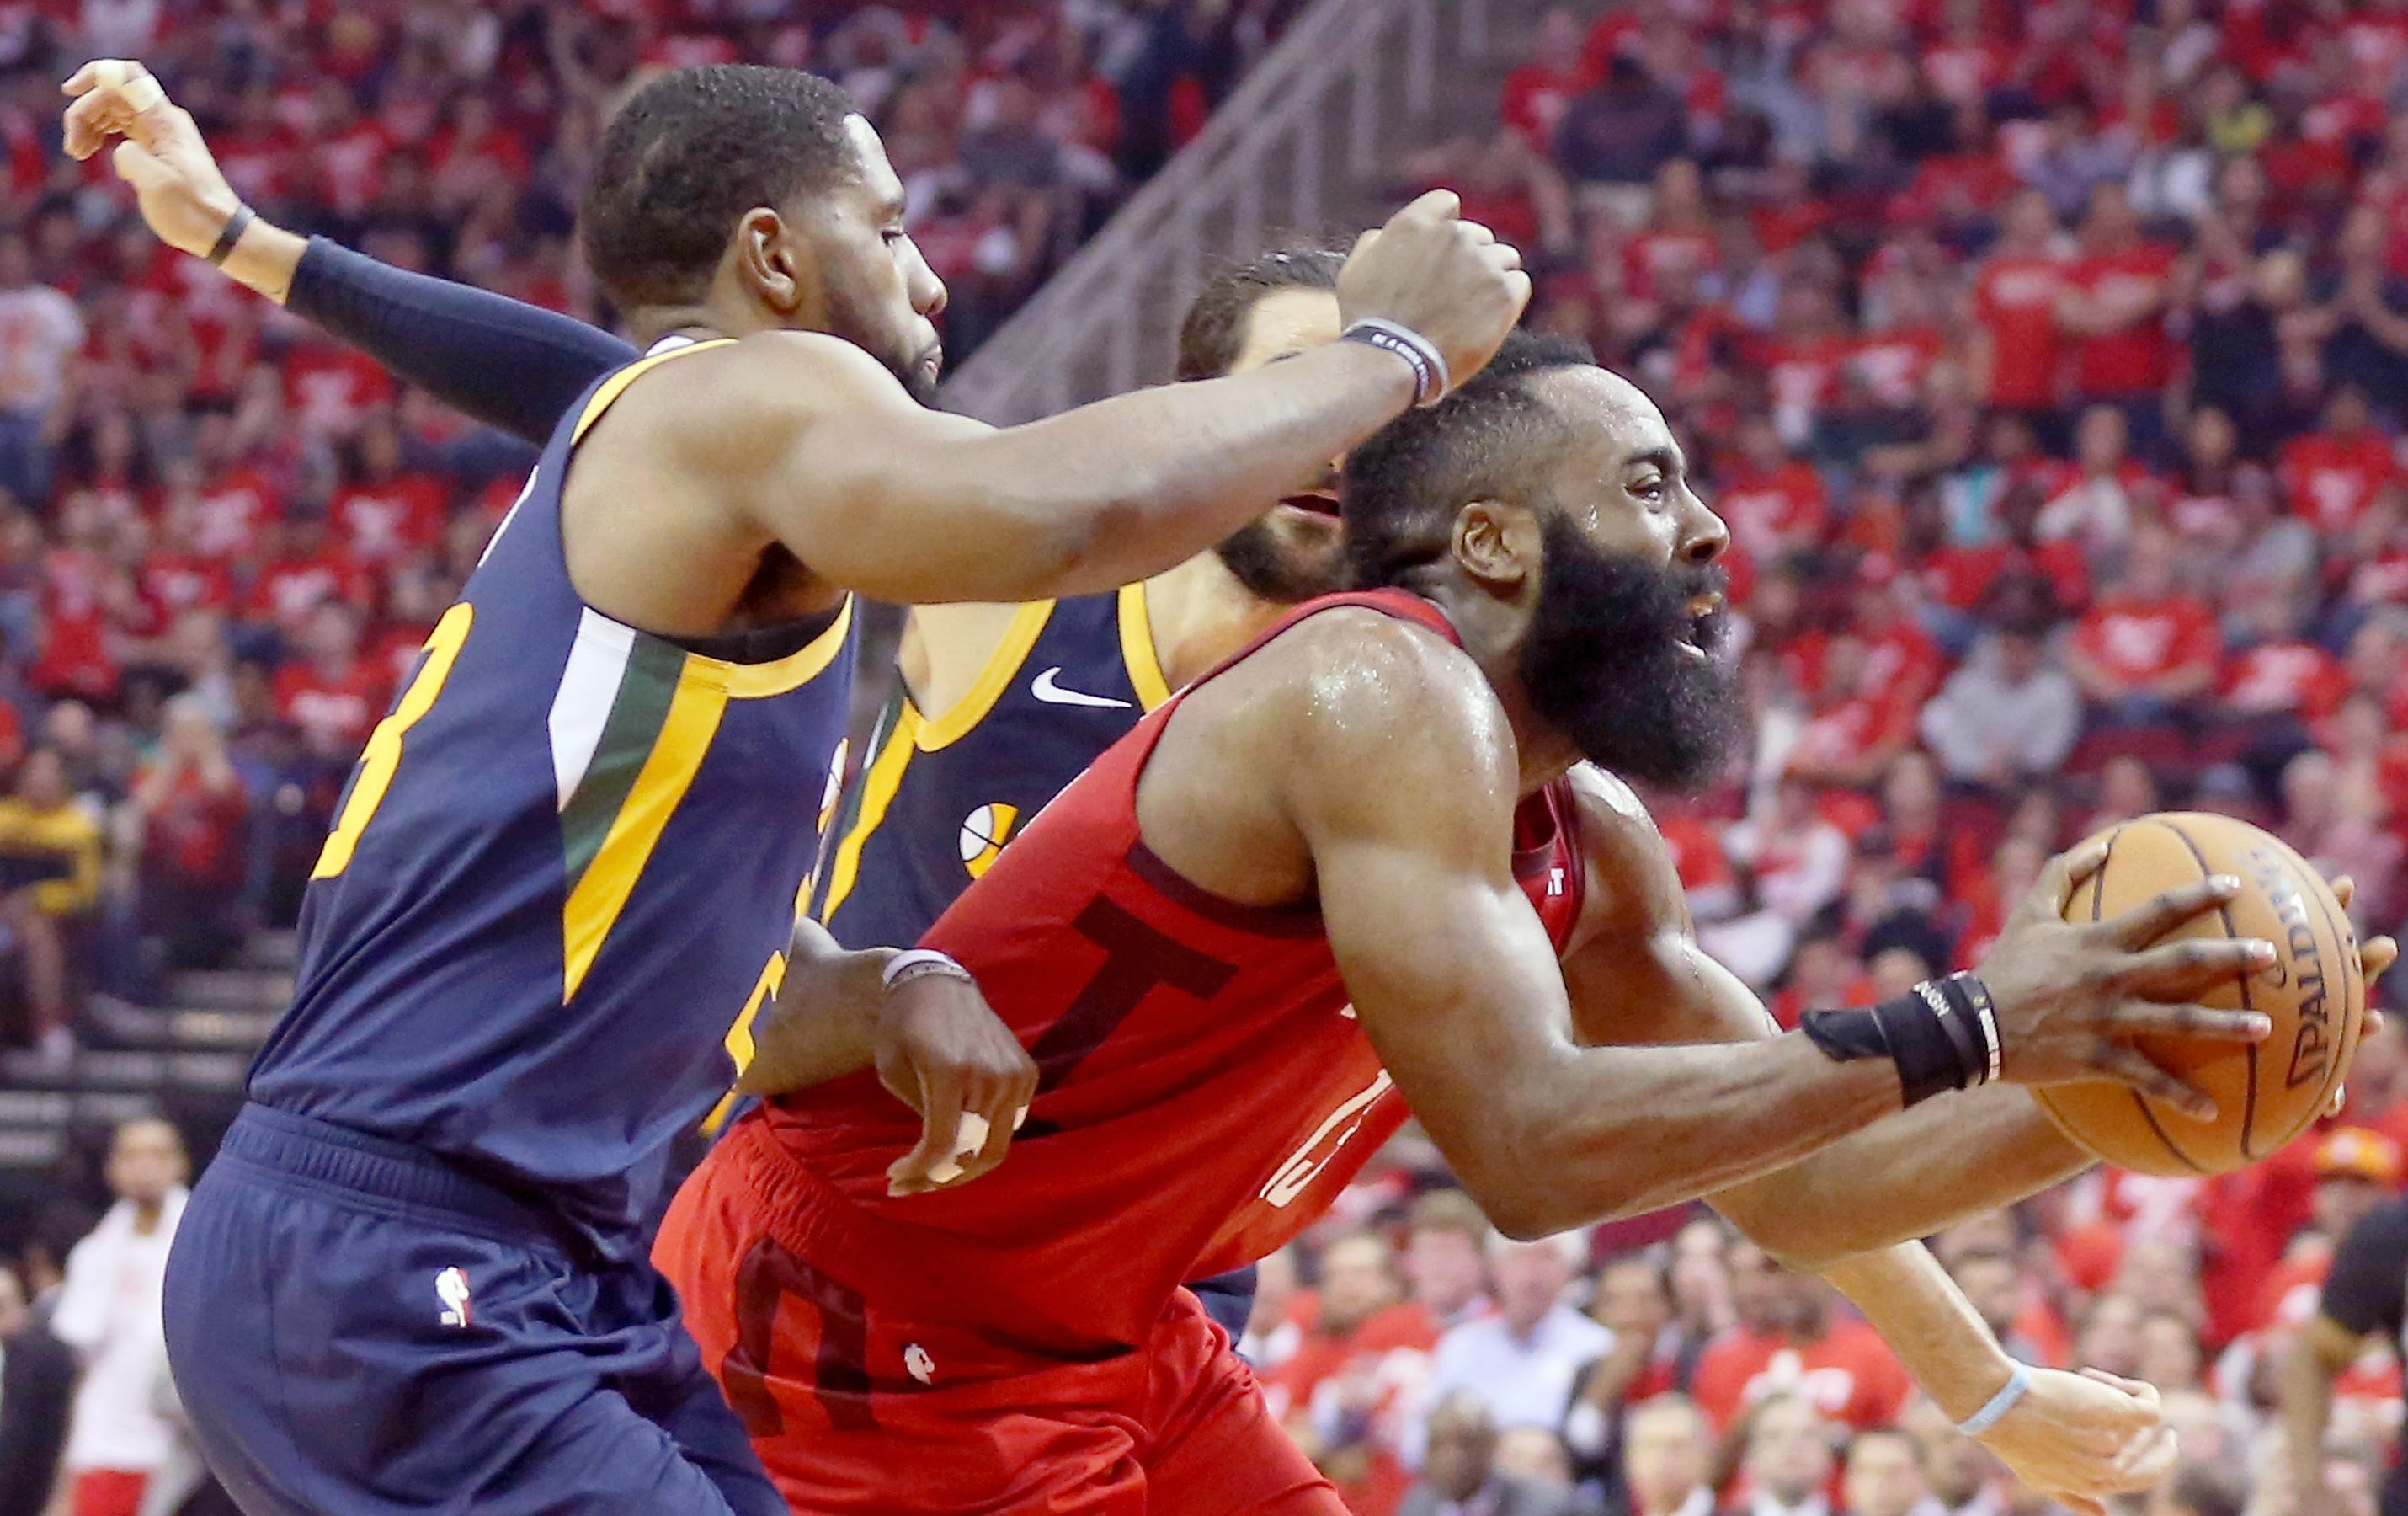 April 17: Houston Rockets guard James Harden is defended by the Utah Jazz in the first half of Game 2 at Toyota Center. The Rockets won the game, 118-98.